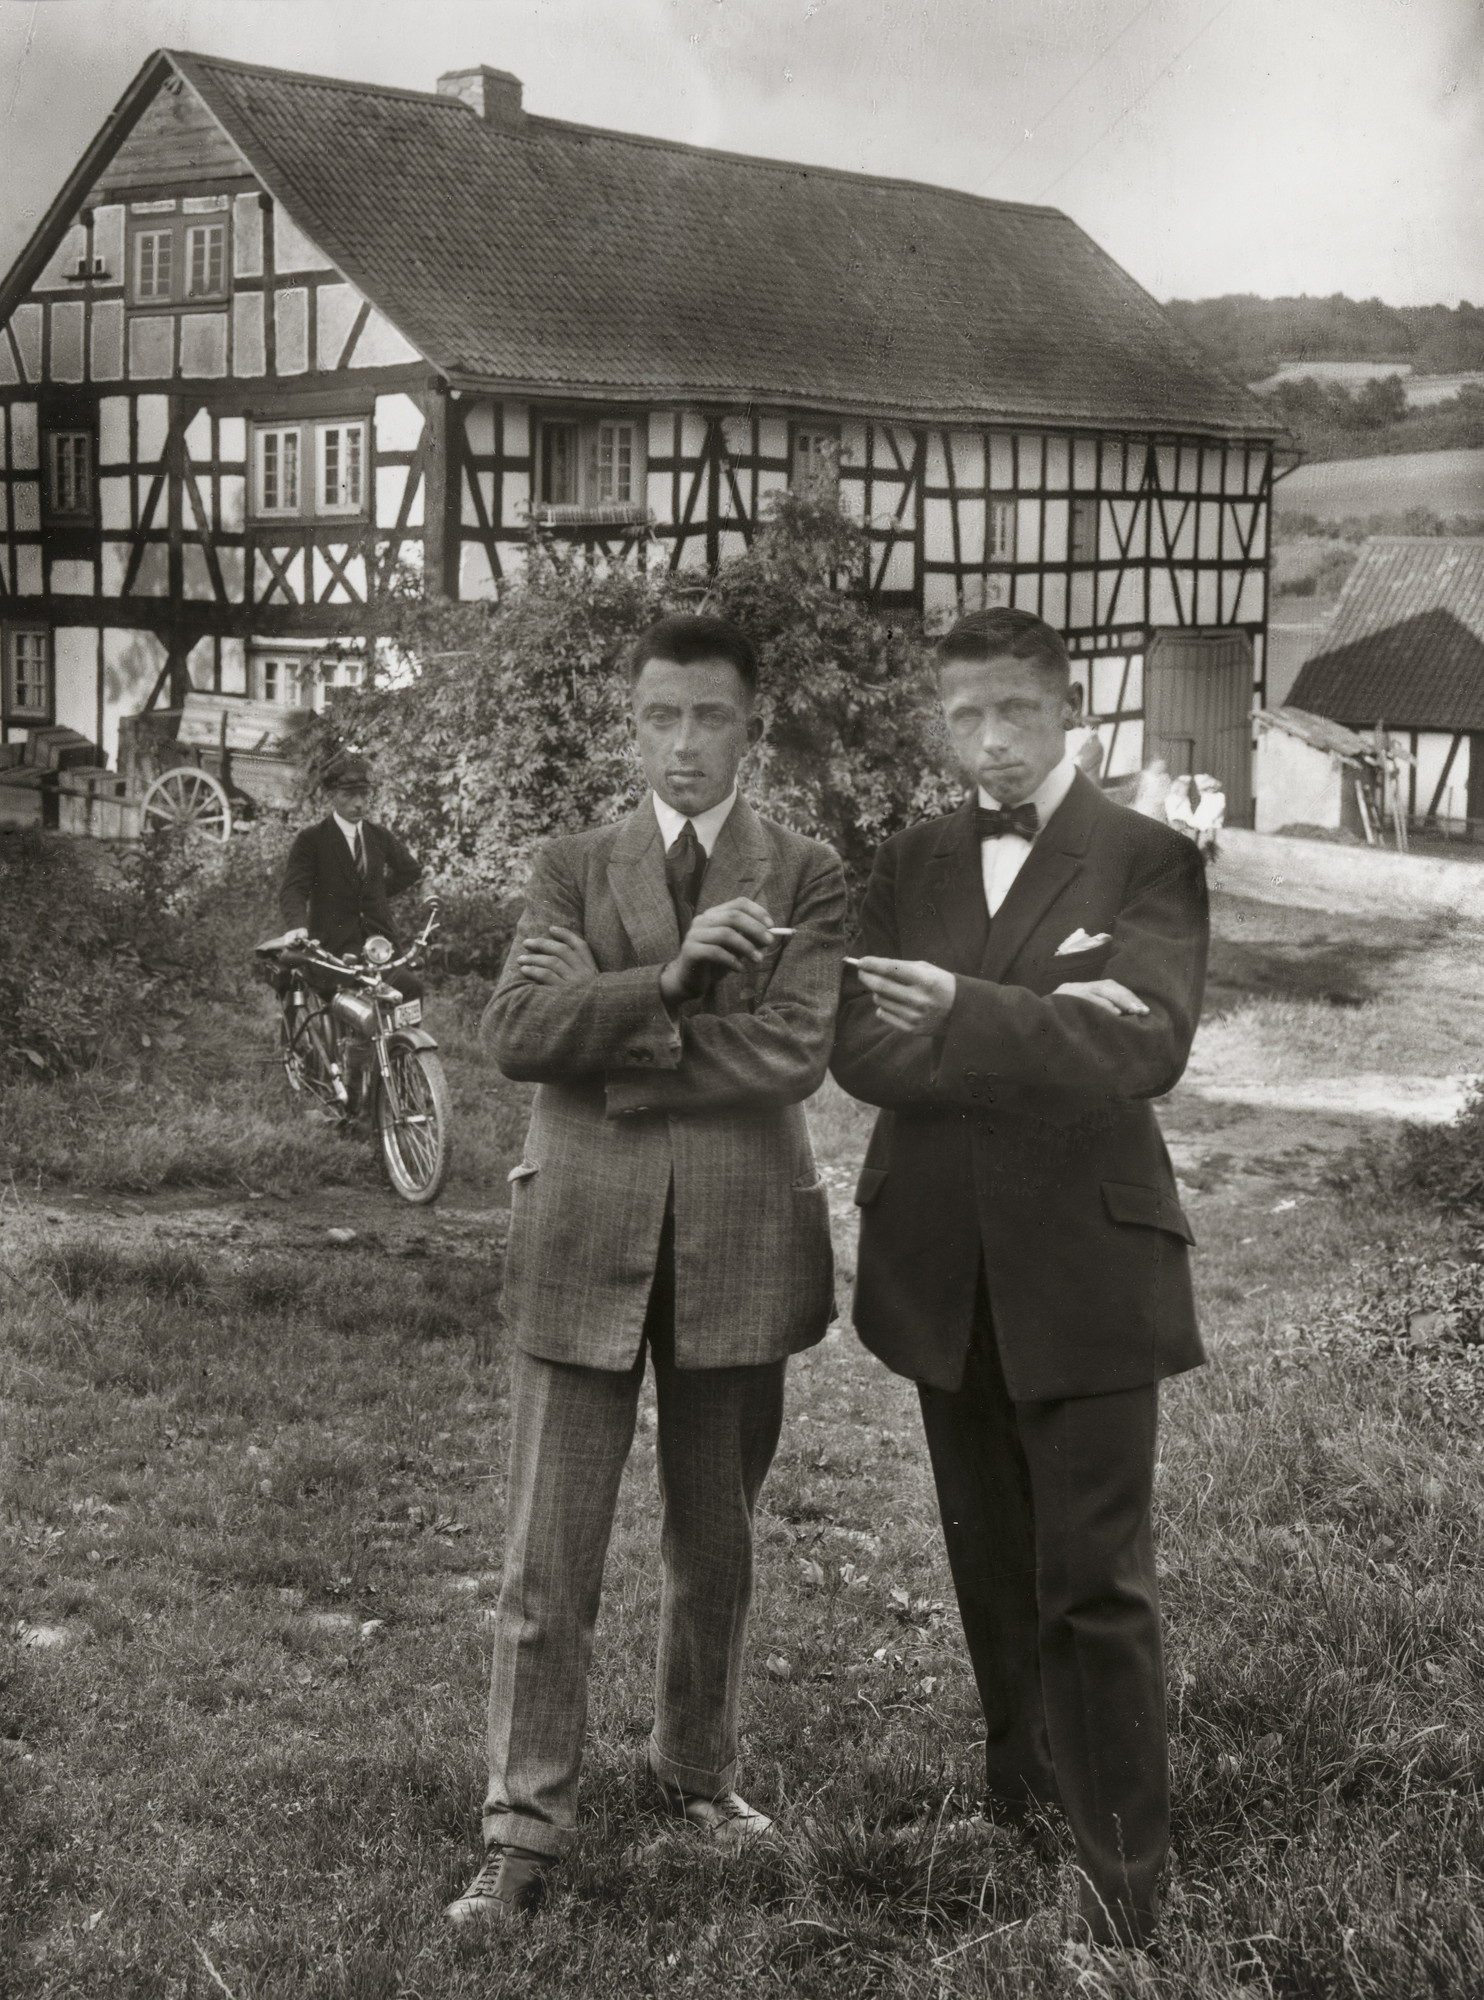 August Sander. Young Farmers on Sunday. c. 1926